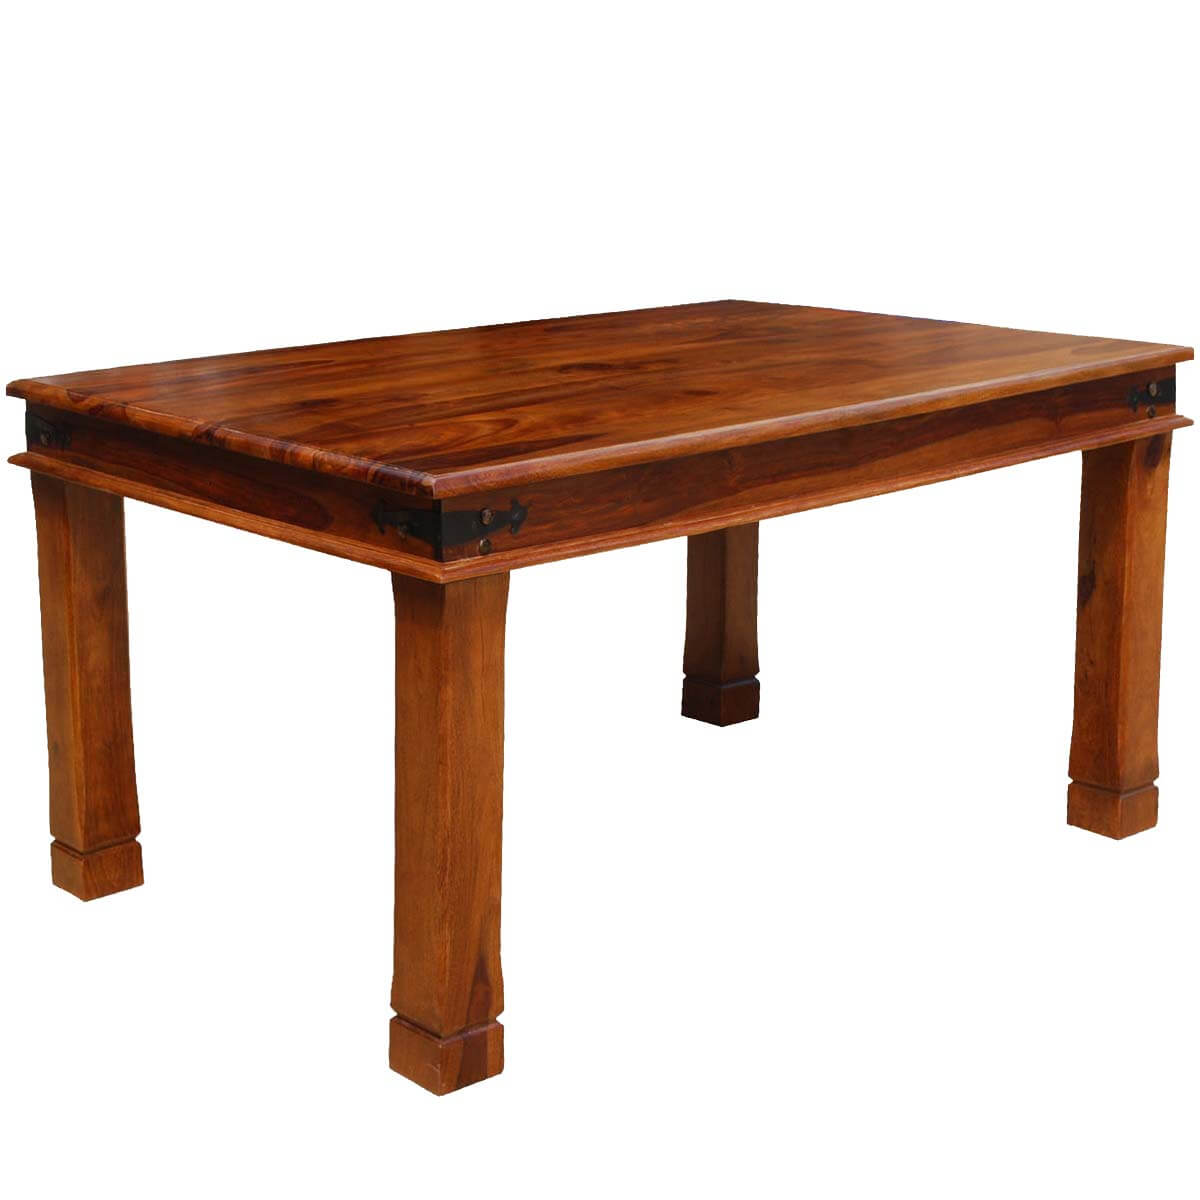 Fannin Transitional Solid Wood Double Edge Dining Table